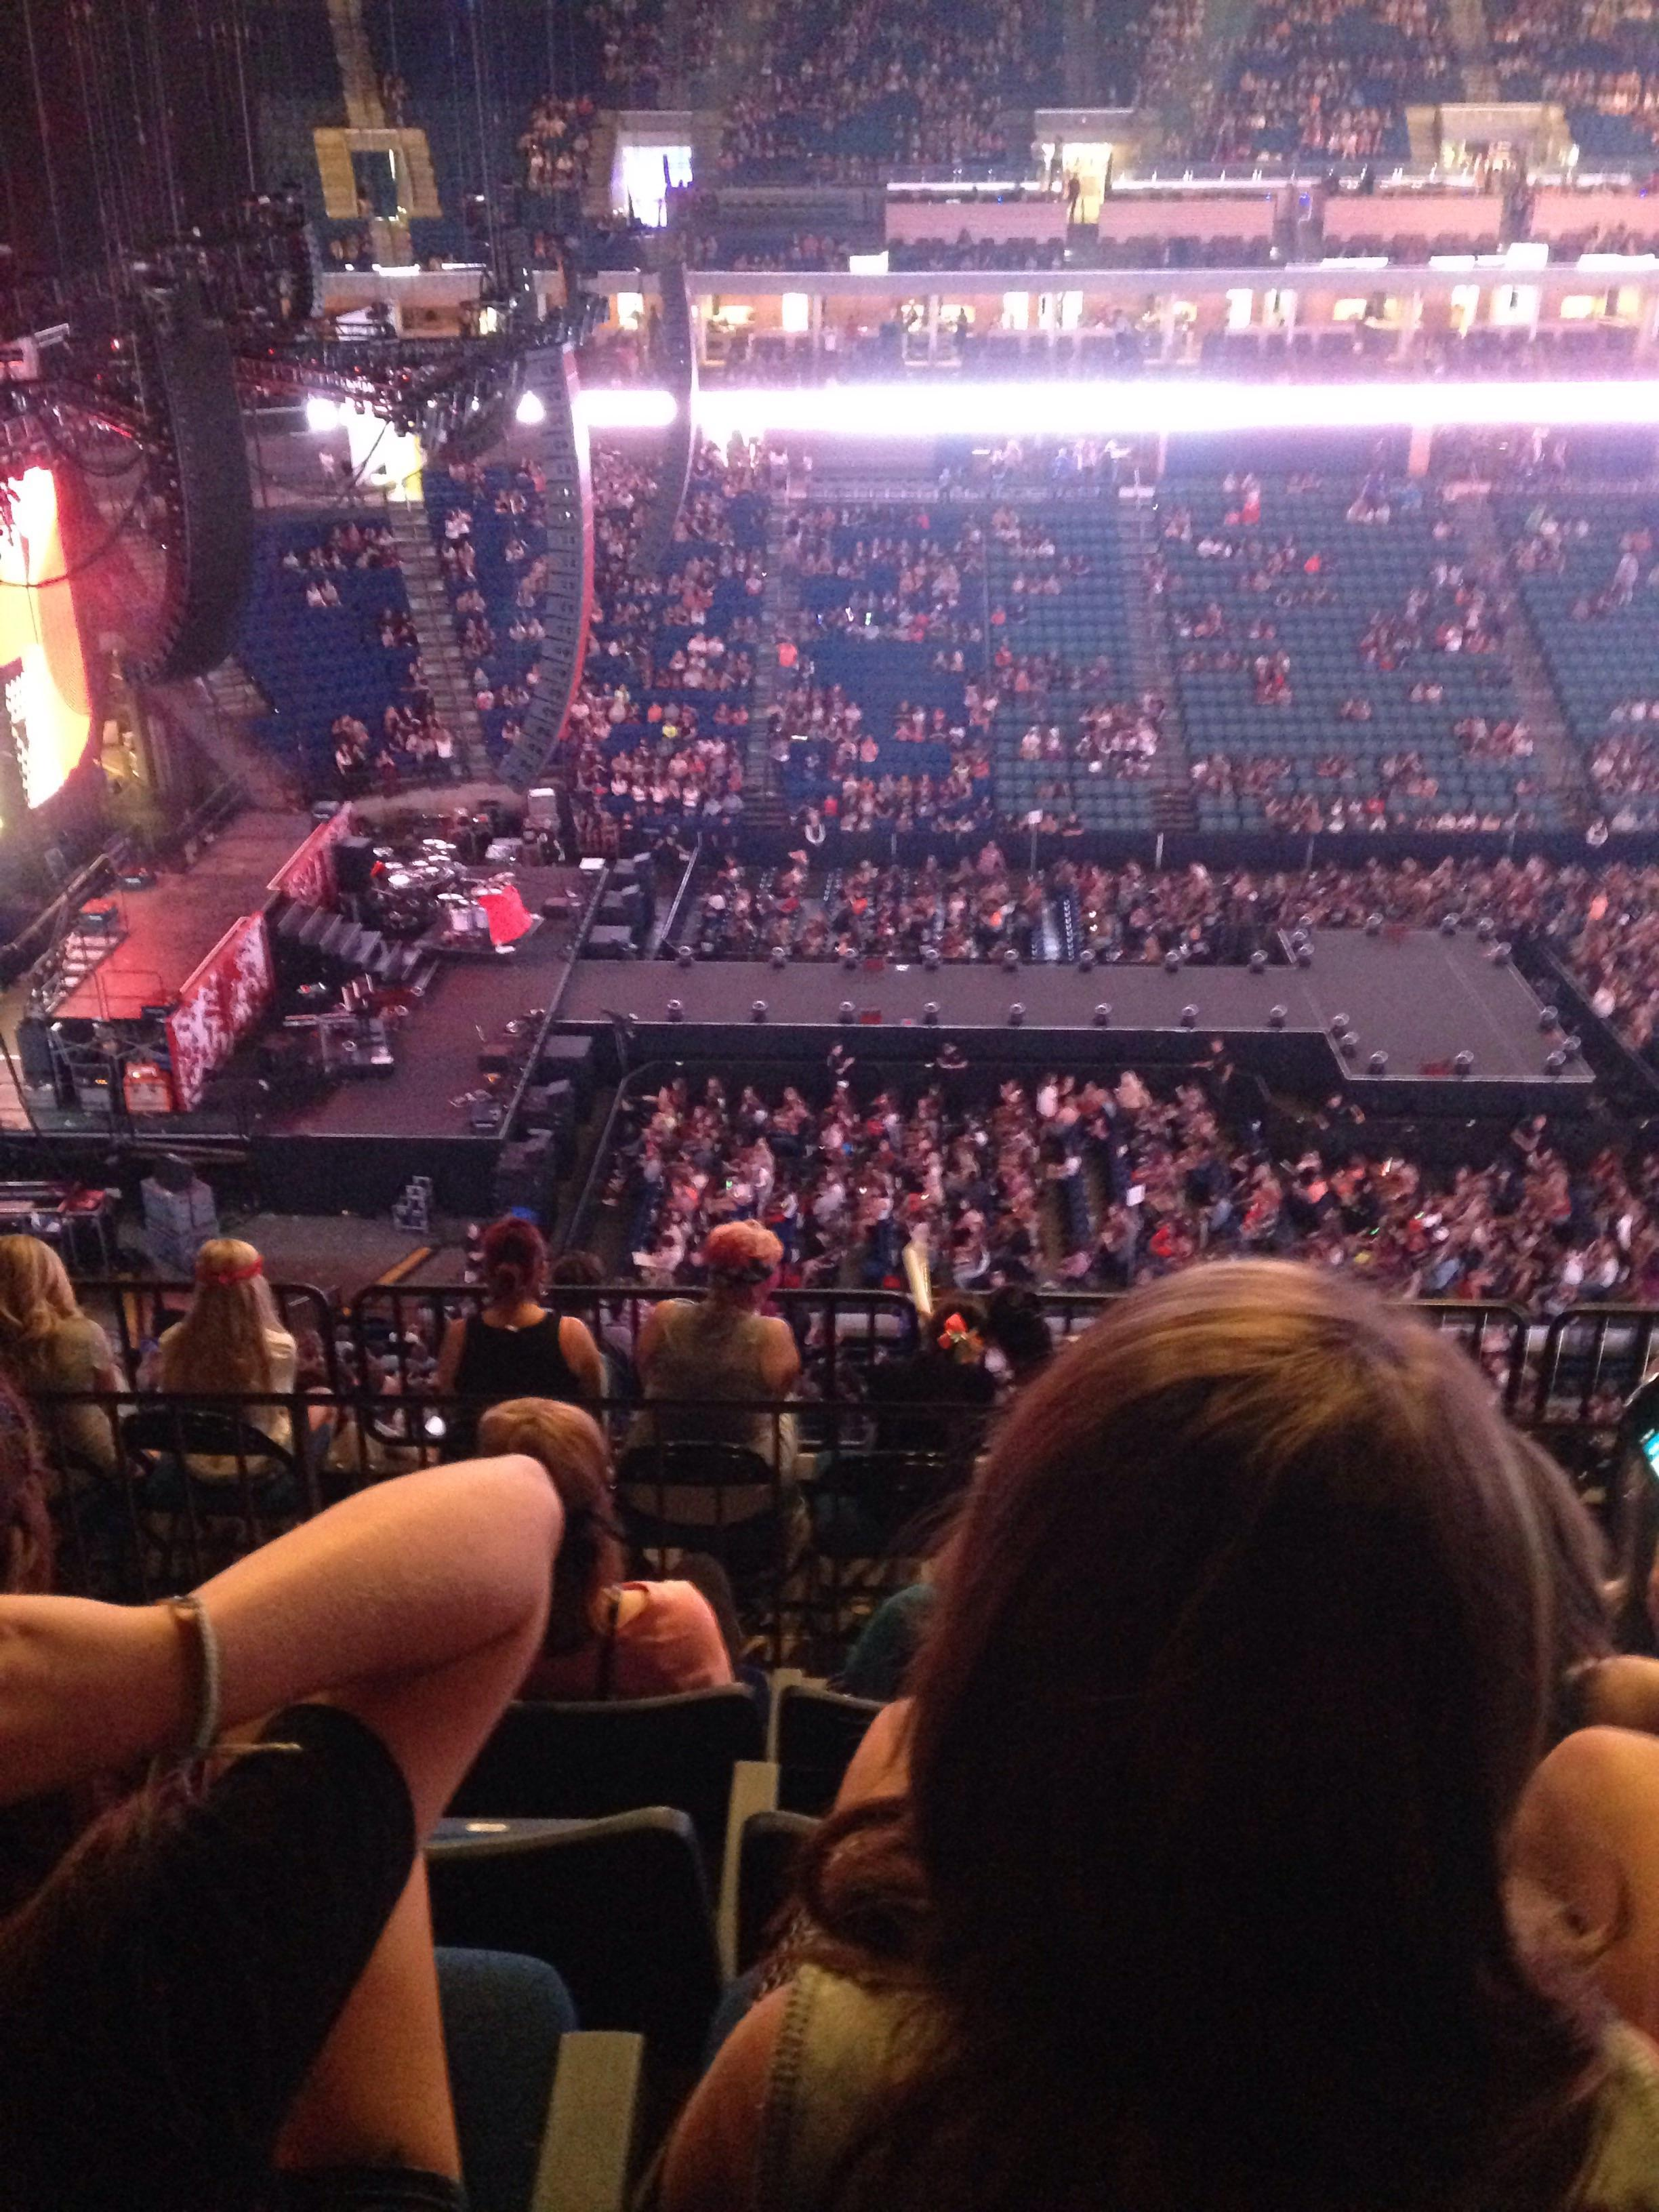 BOK Center Section 326 Row J Seat 11